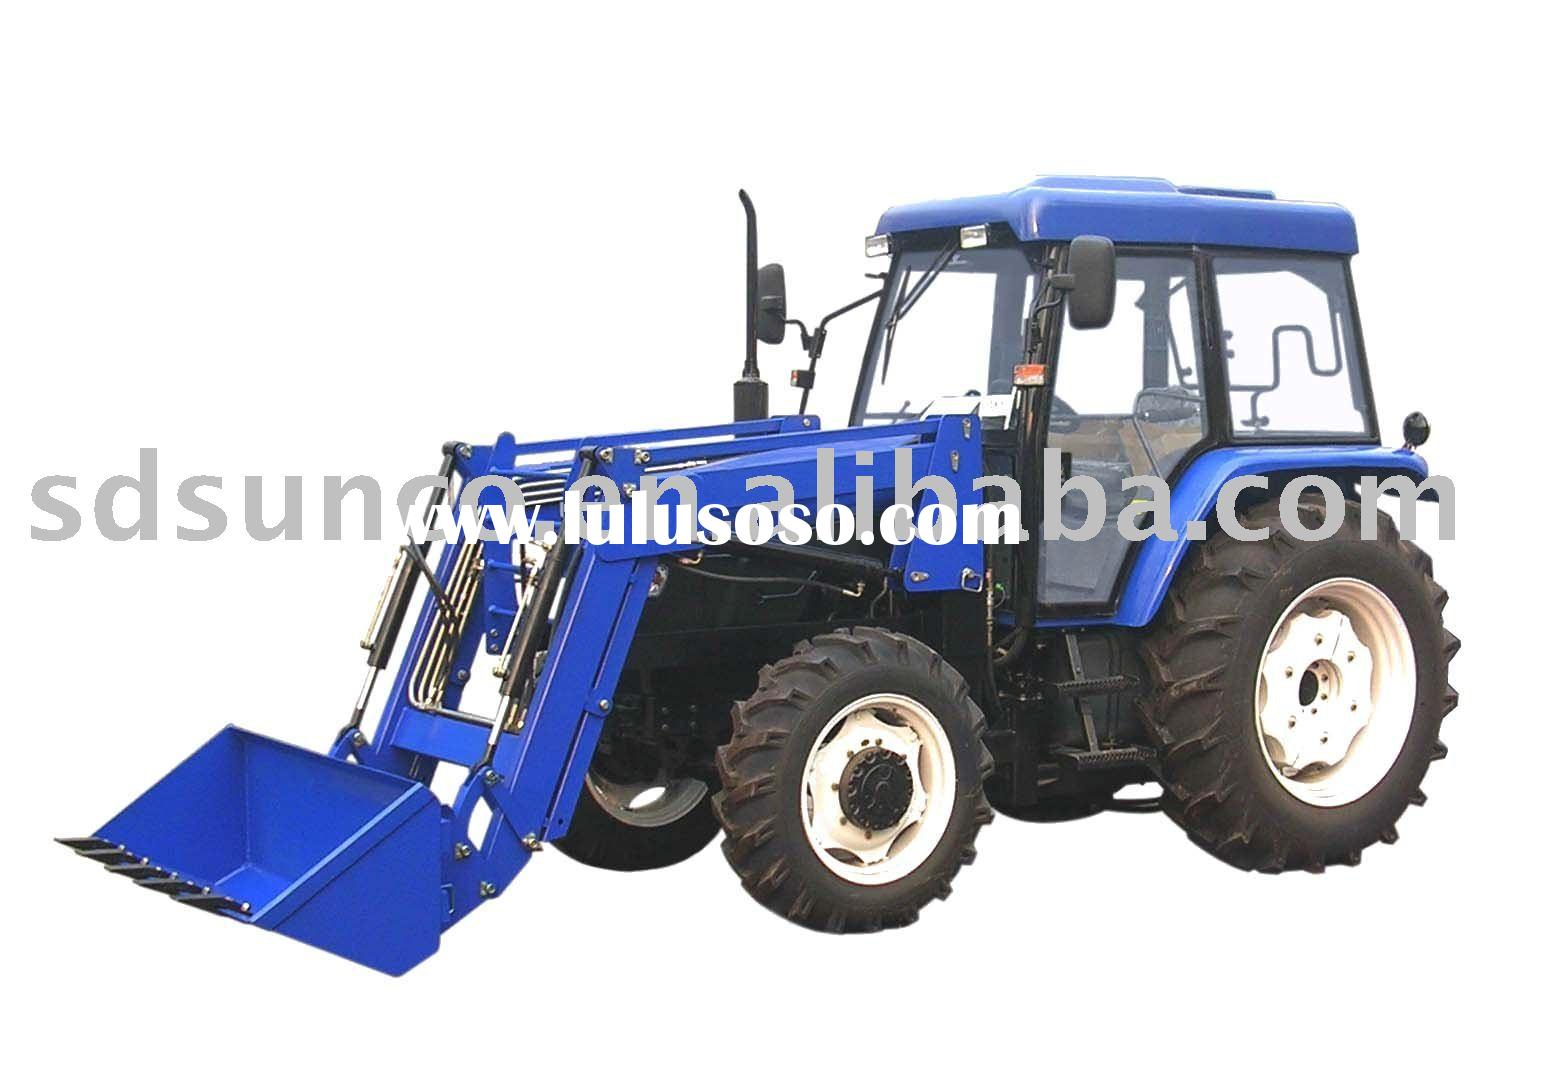 Front End Loader with Common Bucket for Tractor 454/ 504